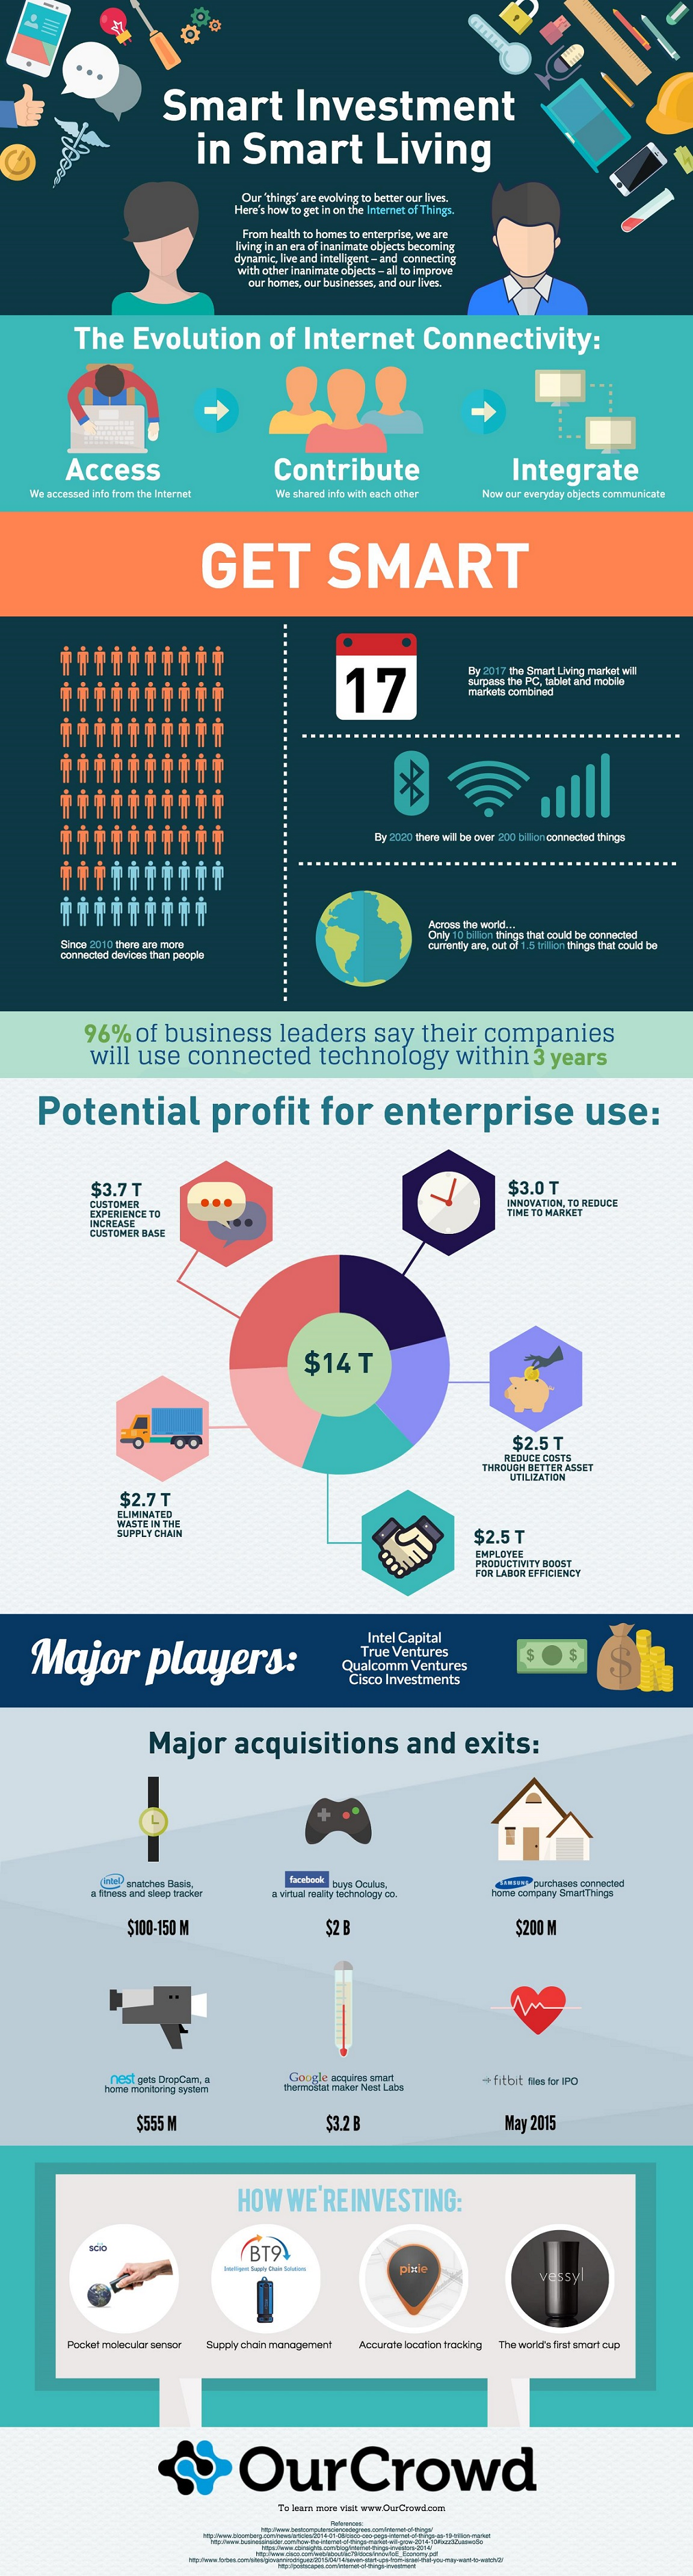 Smart-Living-Infographic-May-2015